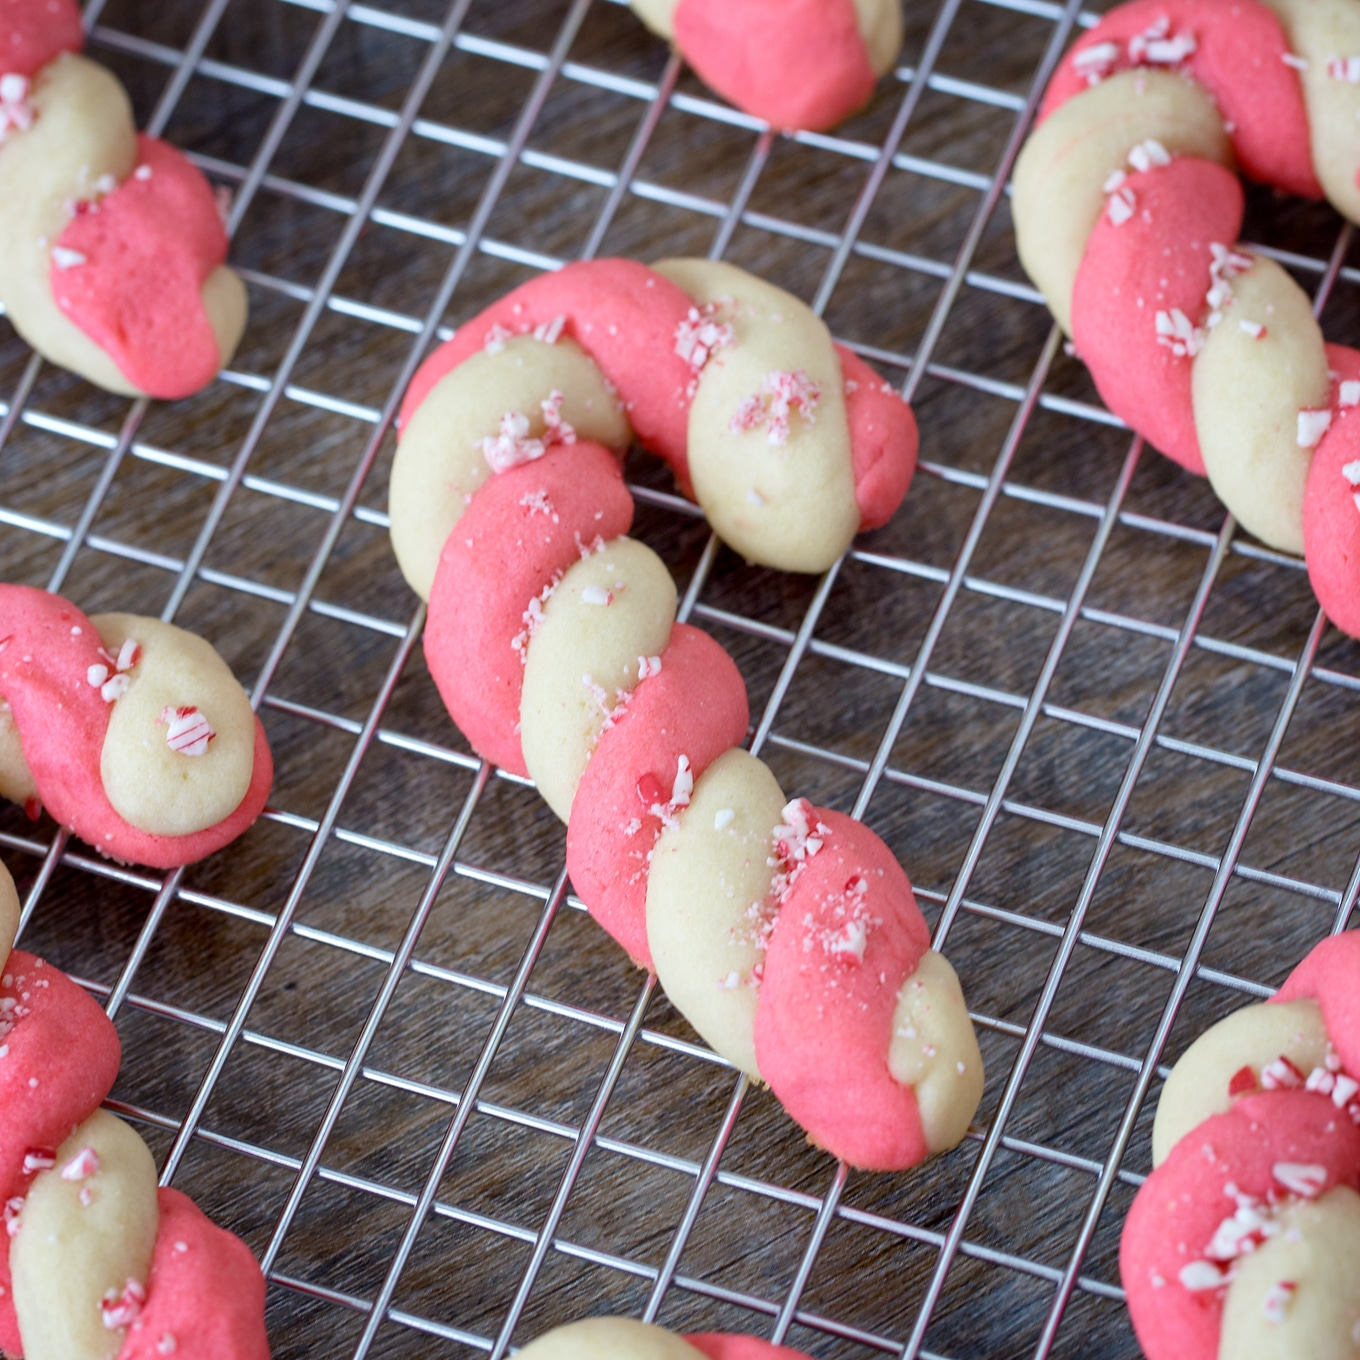 Peppermint Candy Cane Cookies with Crushed Peppermint